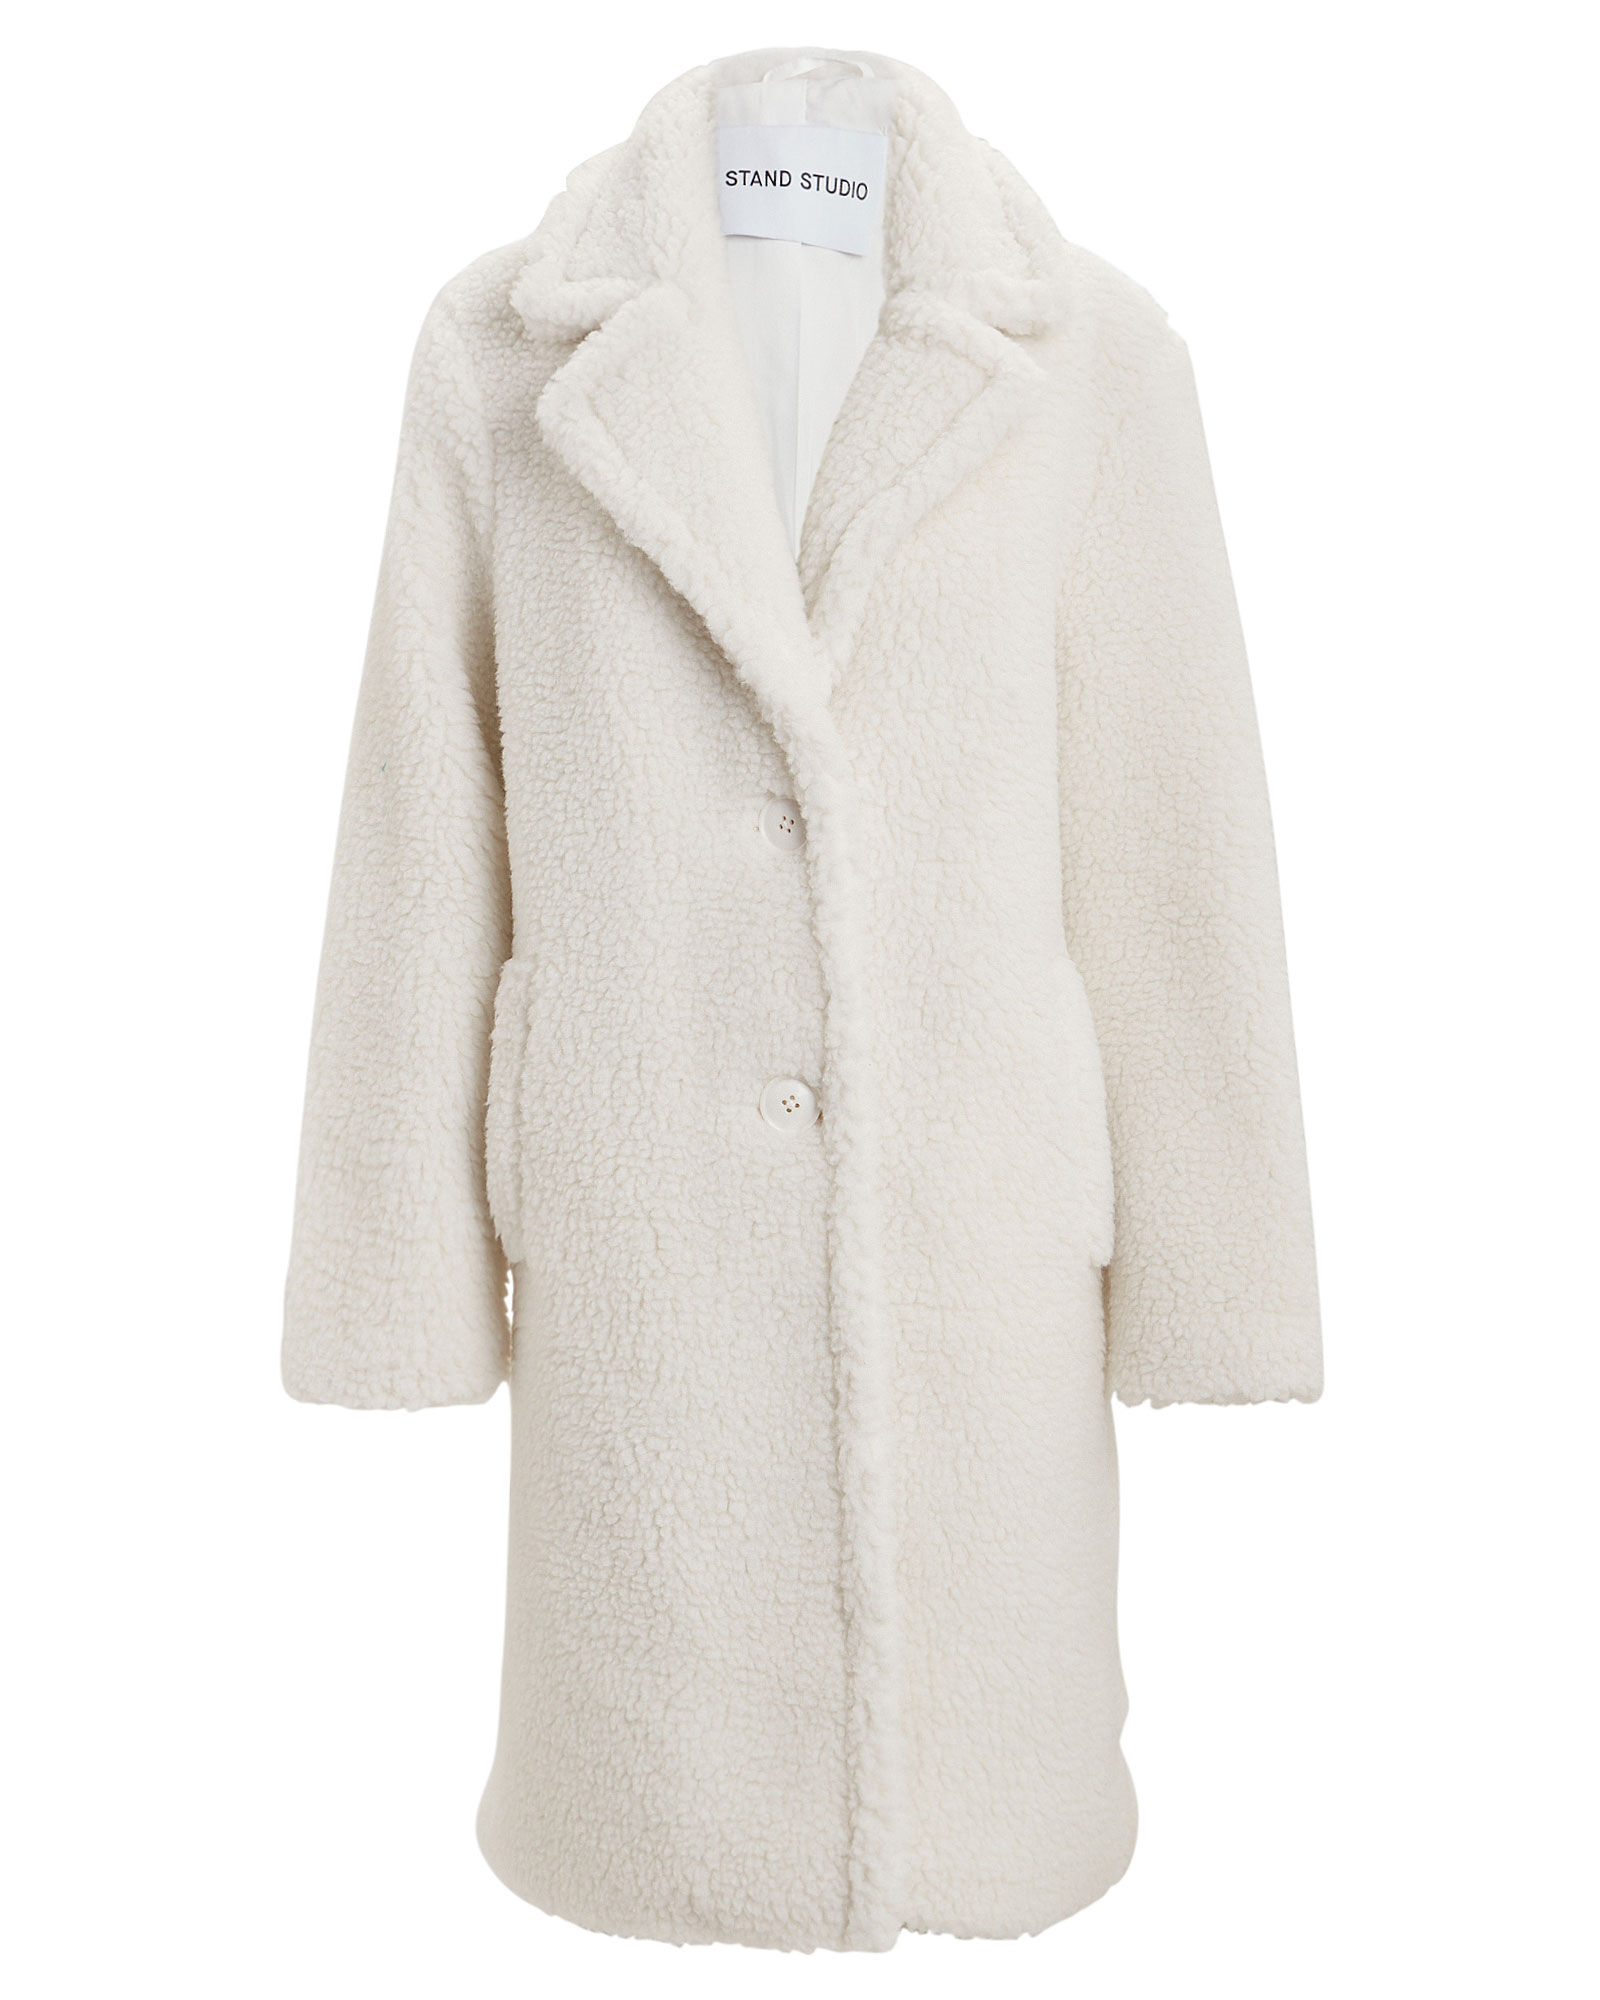 Lisen Faux Shearling Teddy Coat, IVORY, hi-res